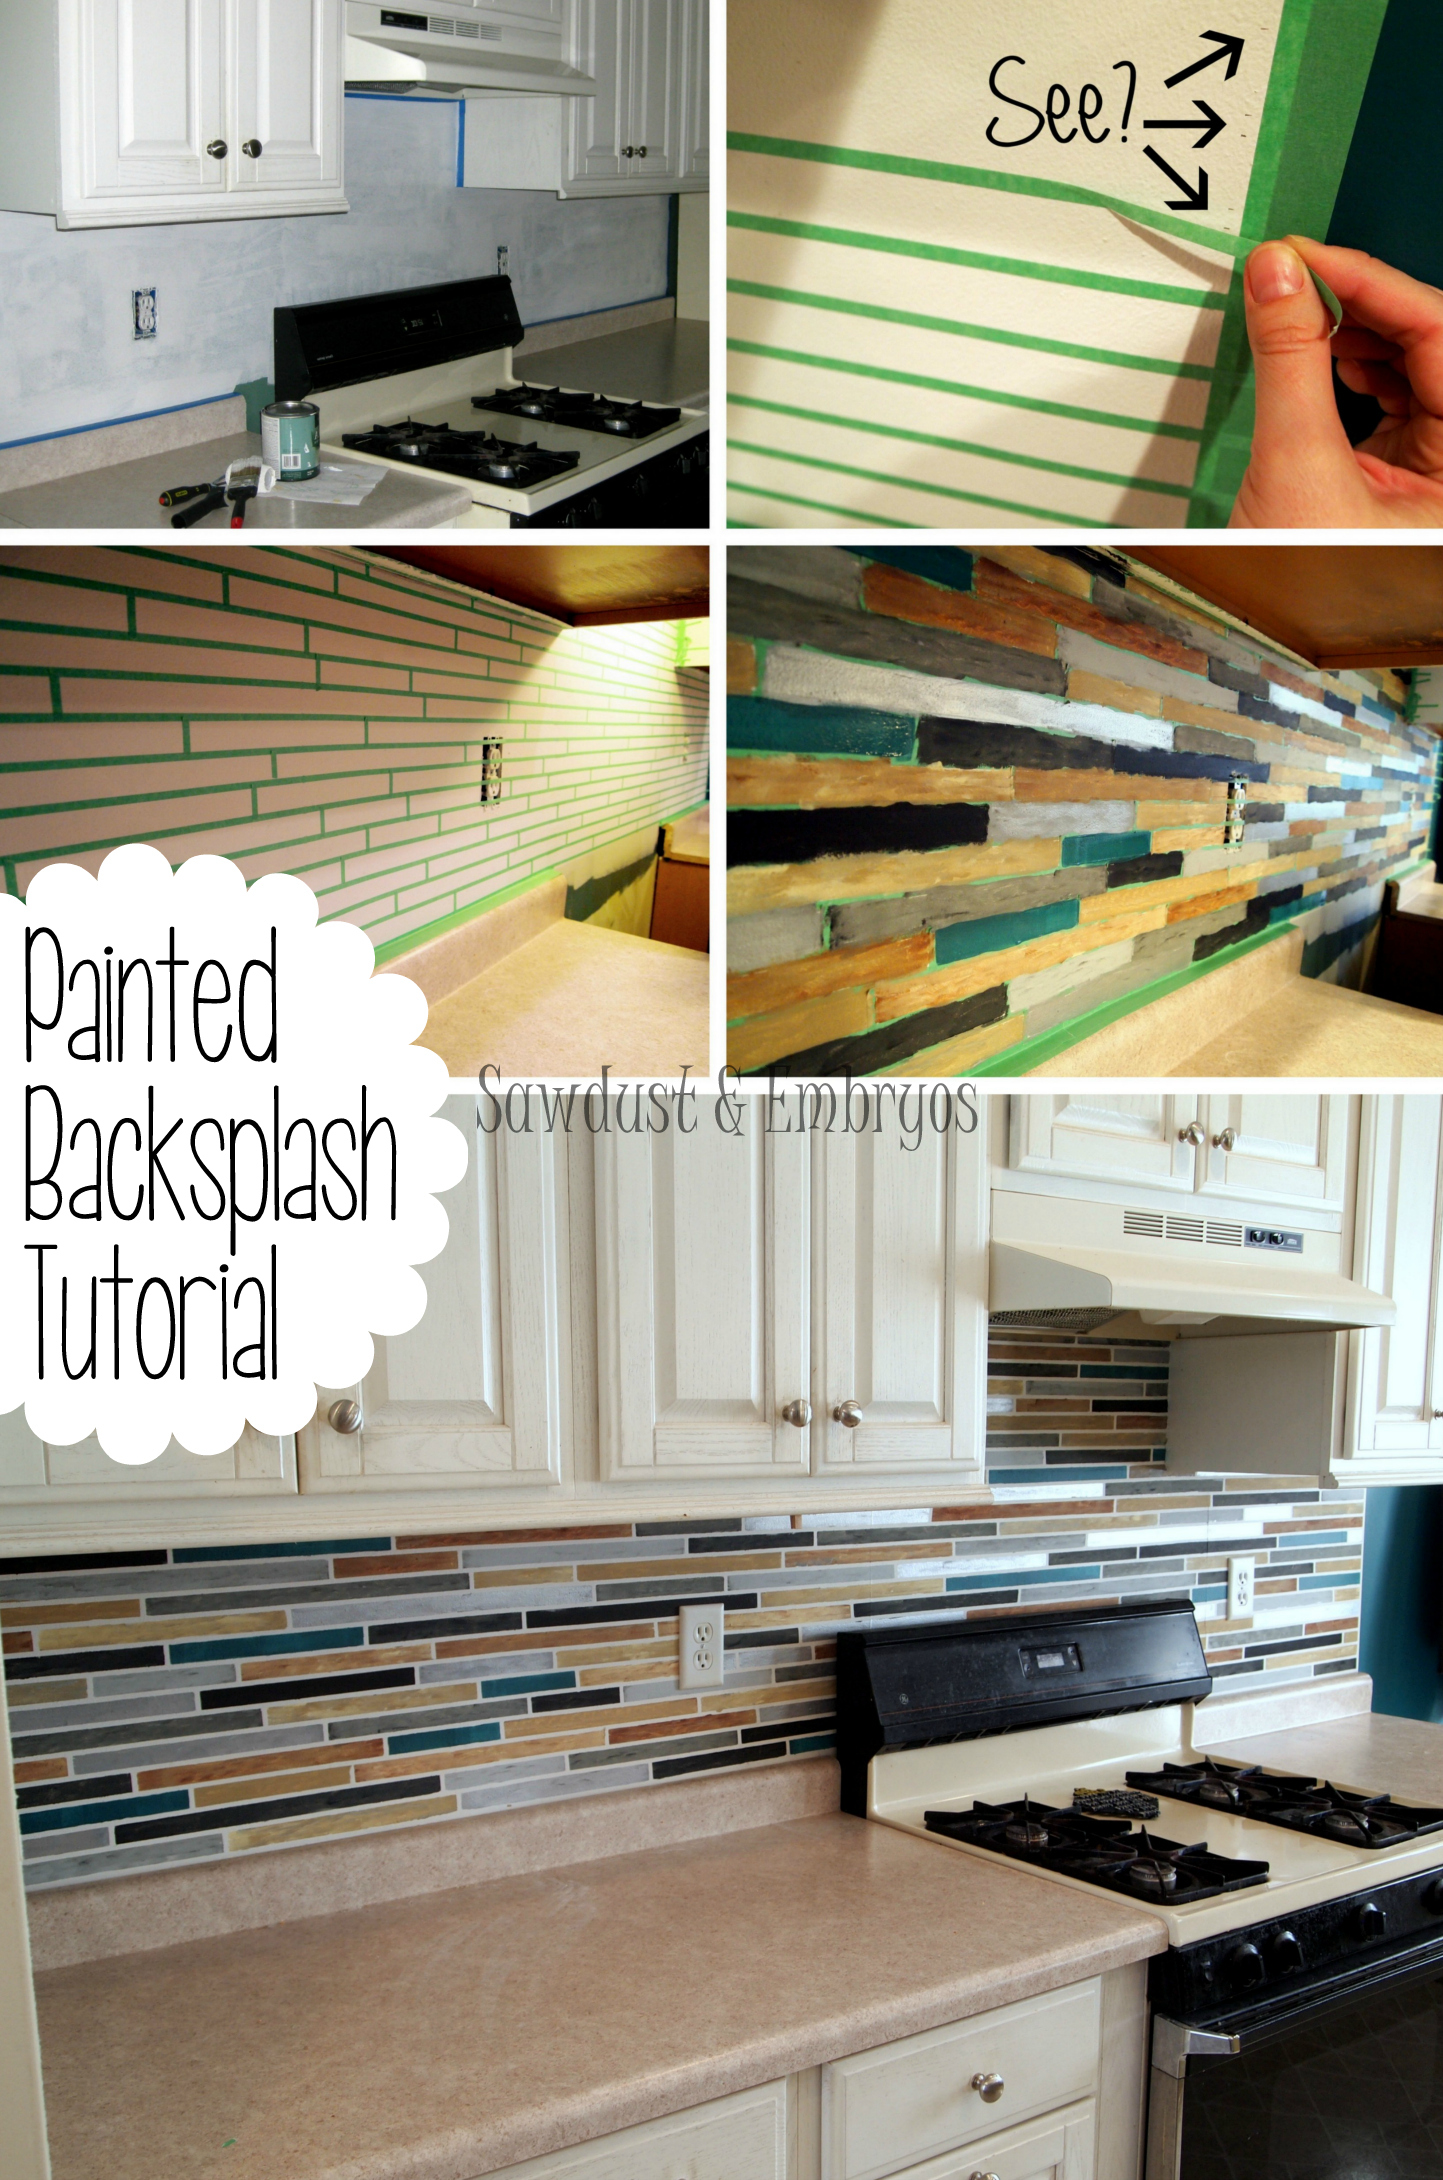 Kitchen Tiles Painted Over how to paint a backsplash to look like tile!